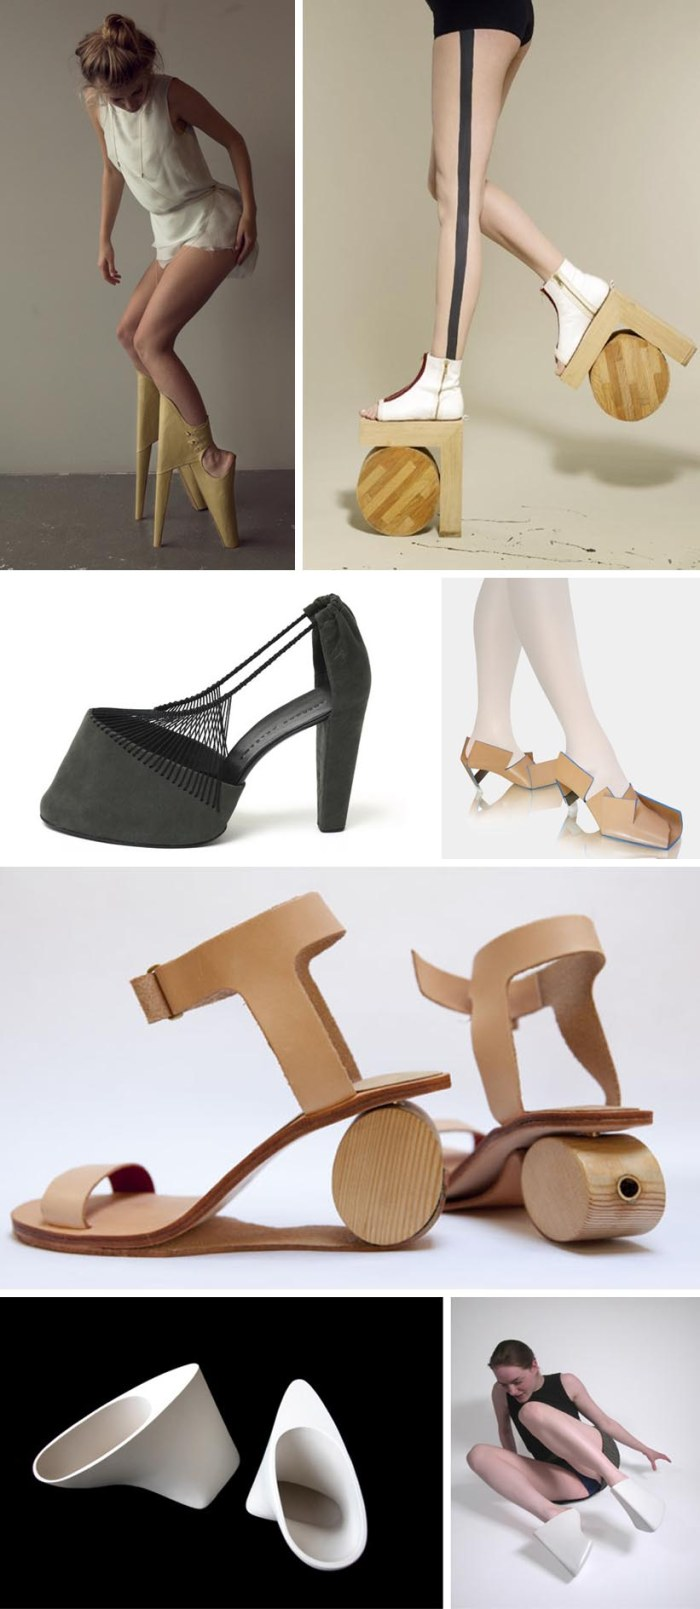 Extreme design in shoes, crazy shoe design, wooden shoes, Pavlina Miklasova, Leanie van der Vyver, Rosanne Bergsma, Marloes ten Bhomer, Benoit Meleard